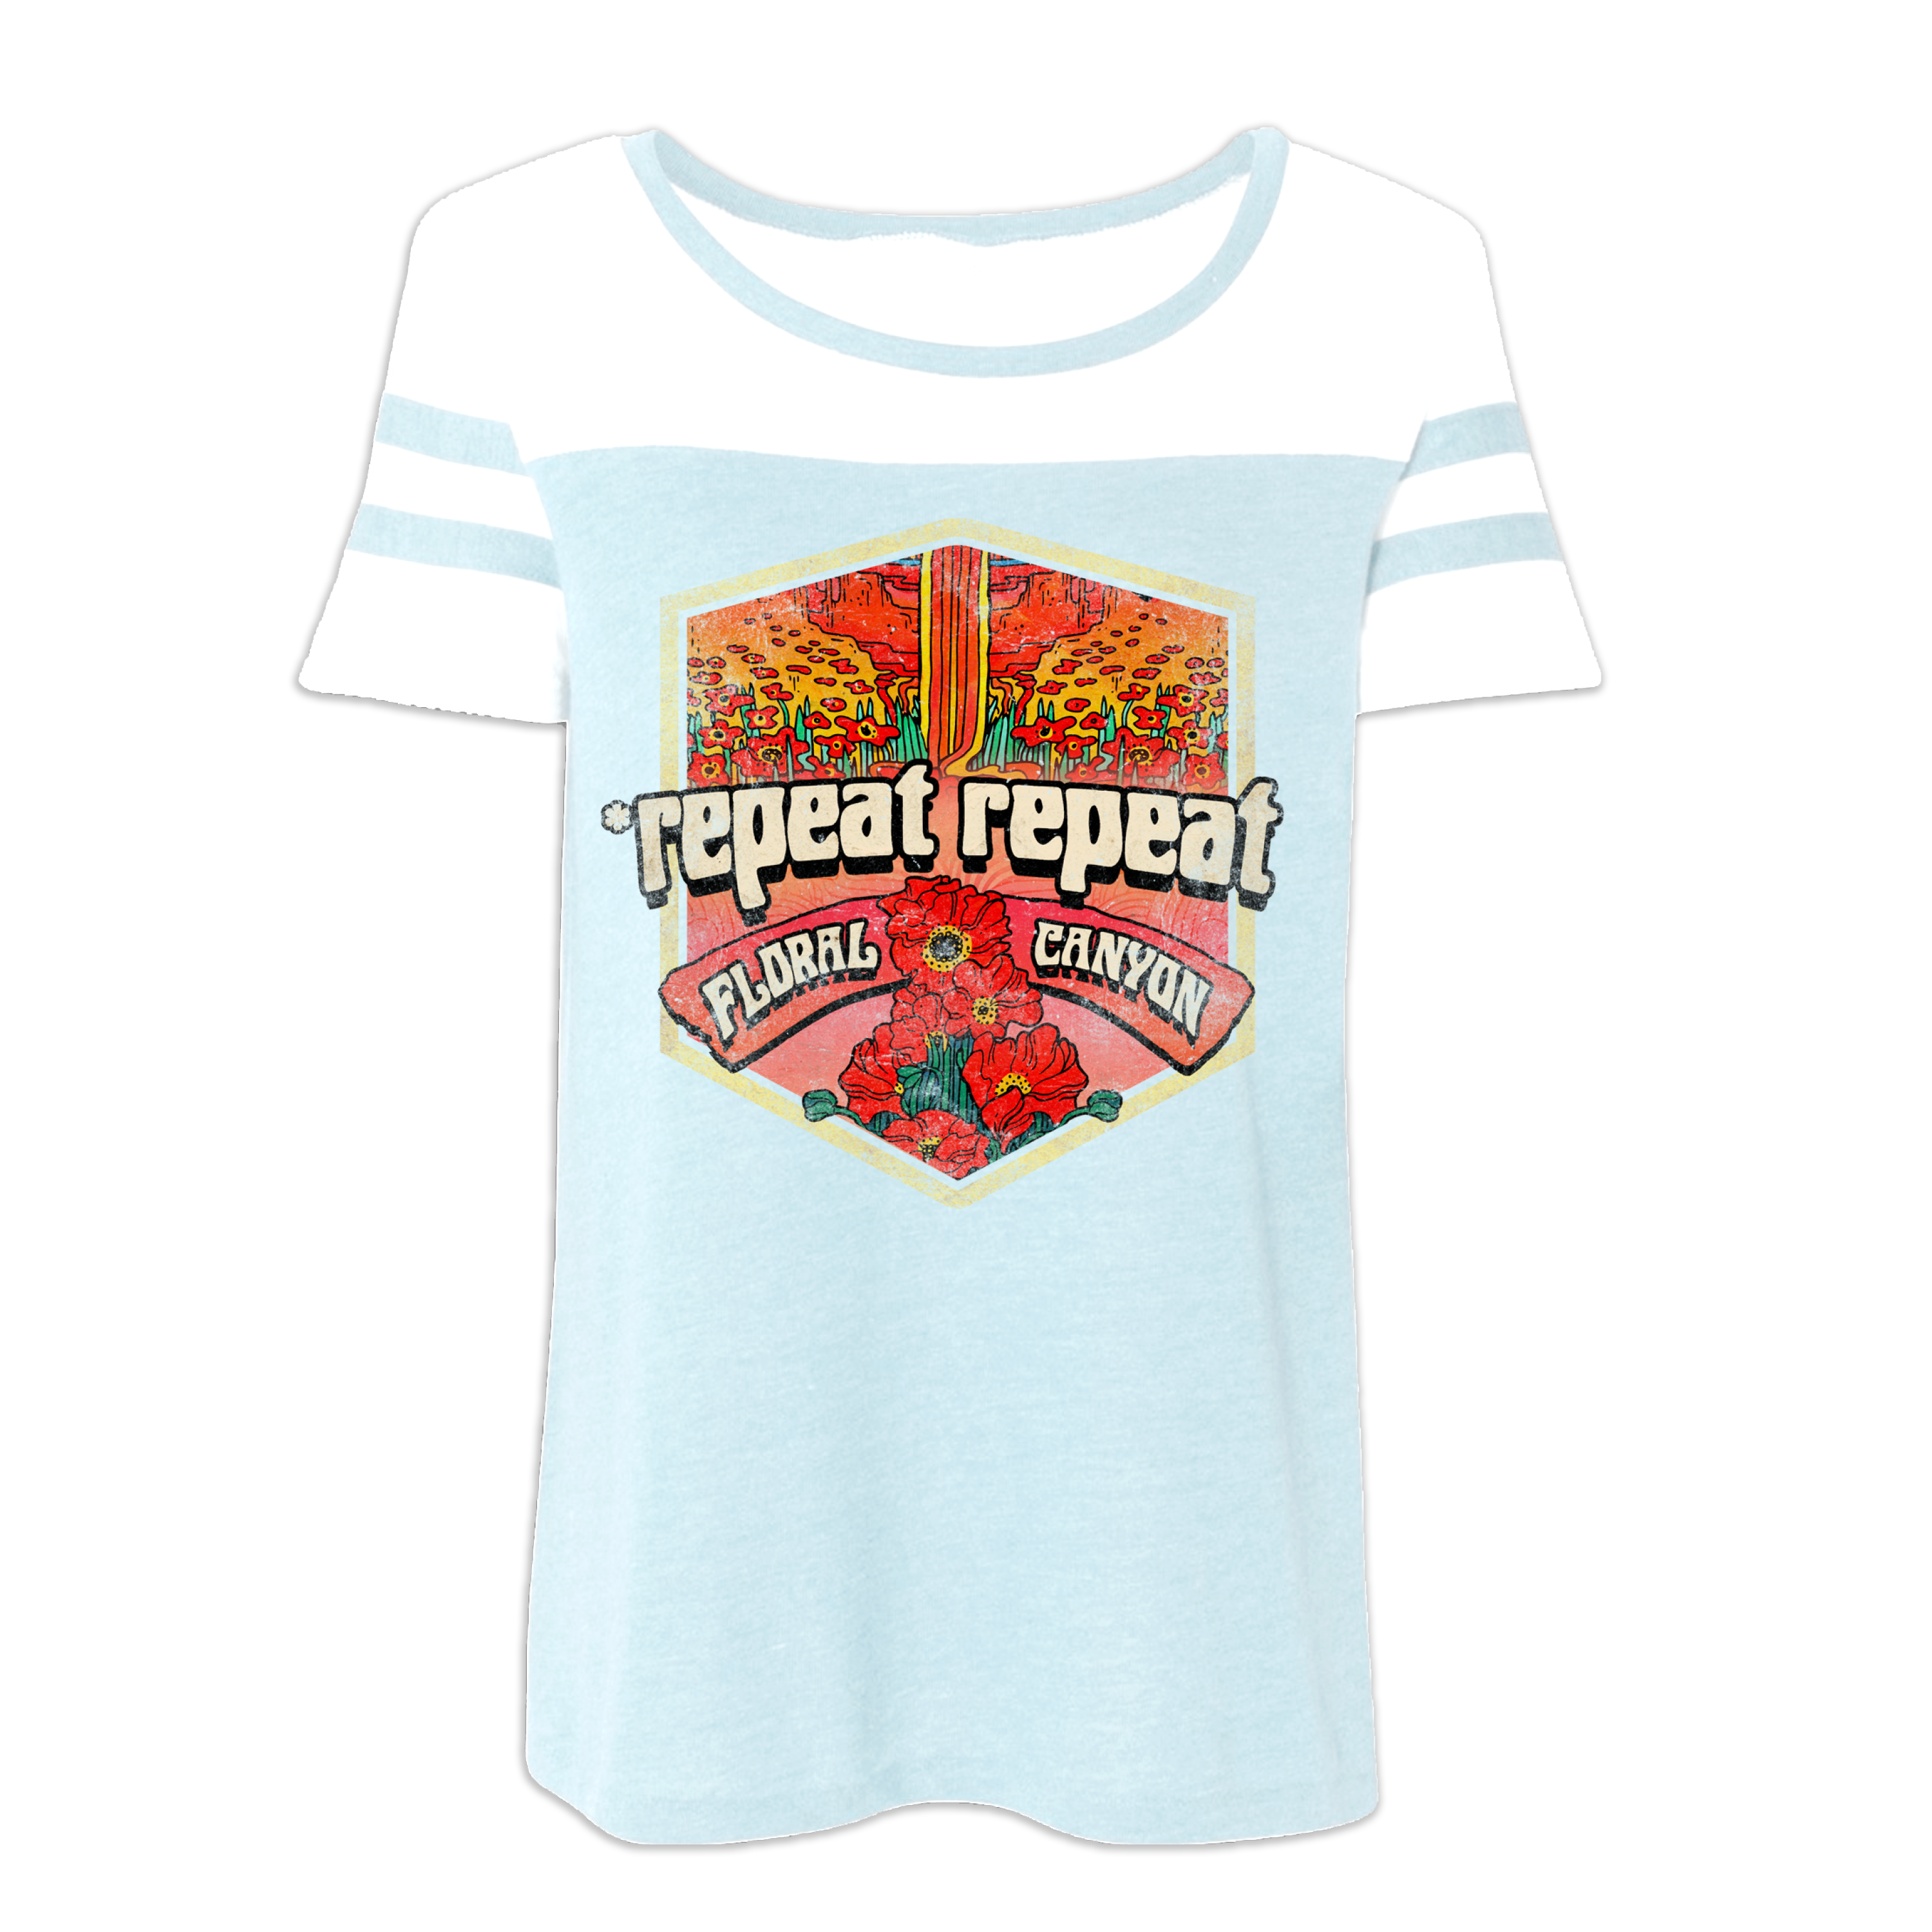 *repeat repeat - Floral Canyon Blue Sky & White Vintage Jersey T-Shirt